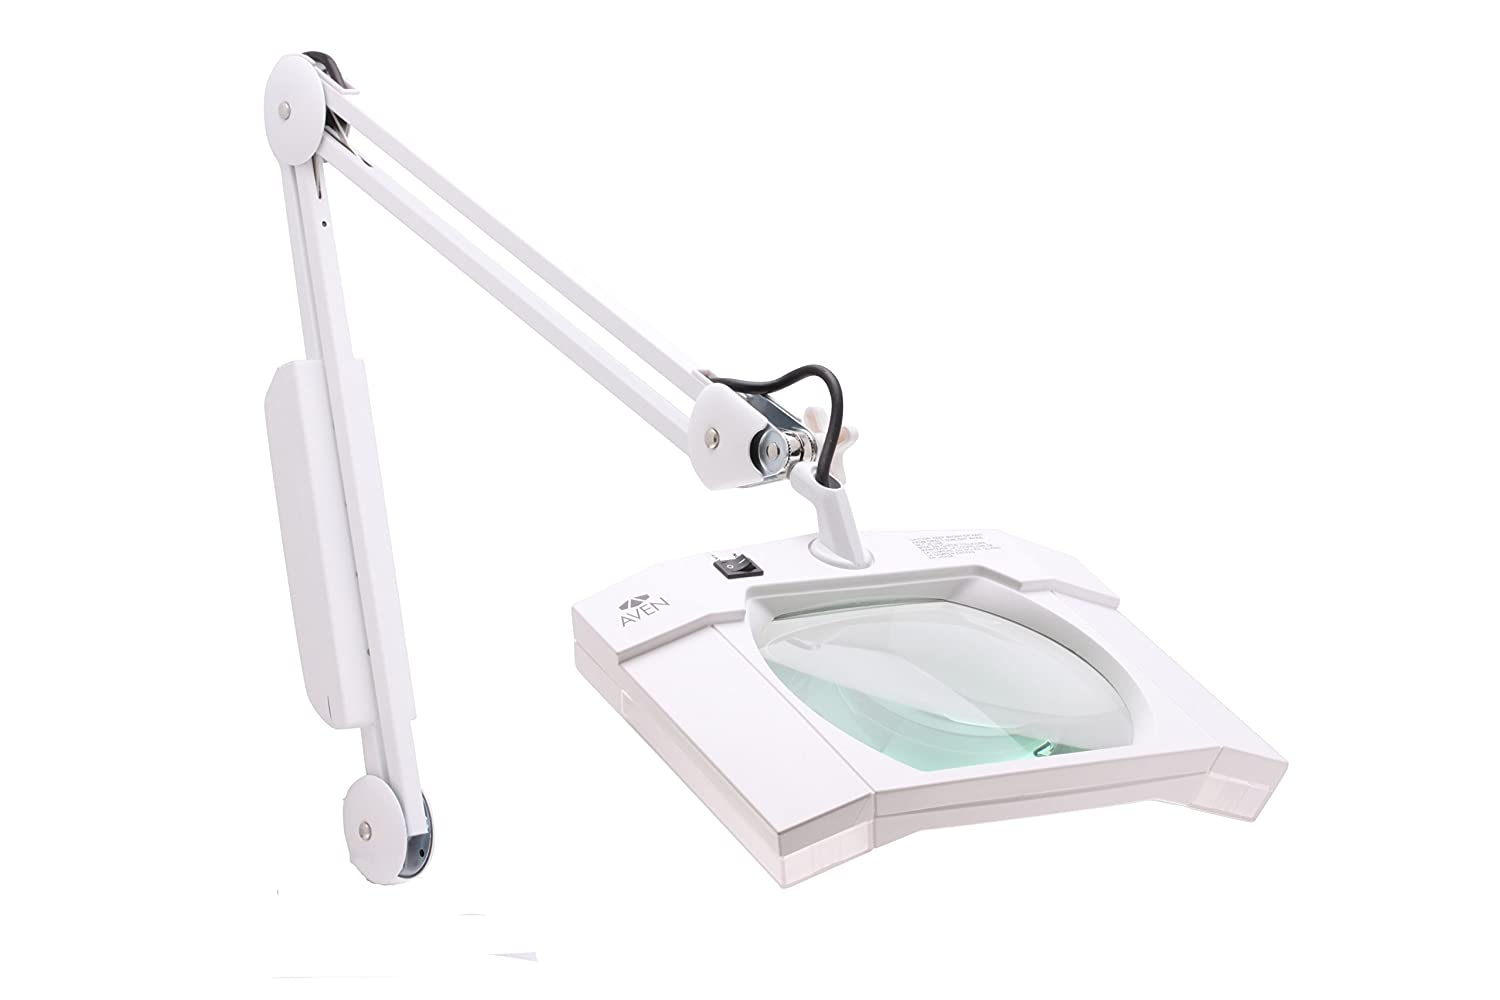 illuminated lighting and magnification catalog desk magnifiers diopter magnifying dv clamp reach daylight led lens with lamp additional webxl white slimline accessories